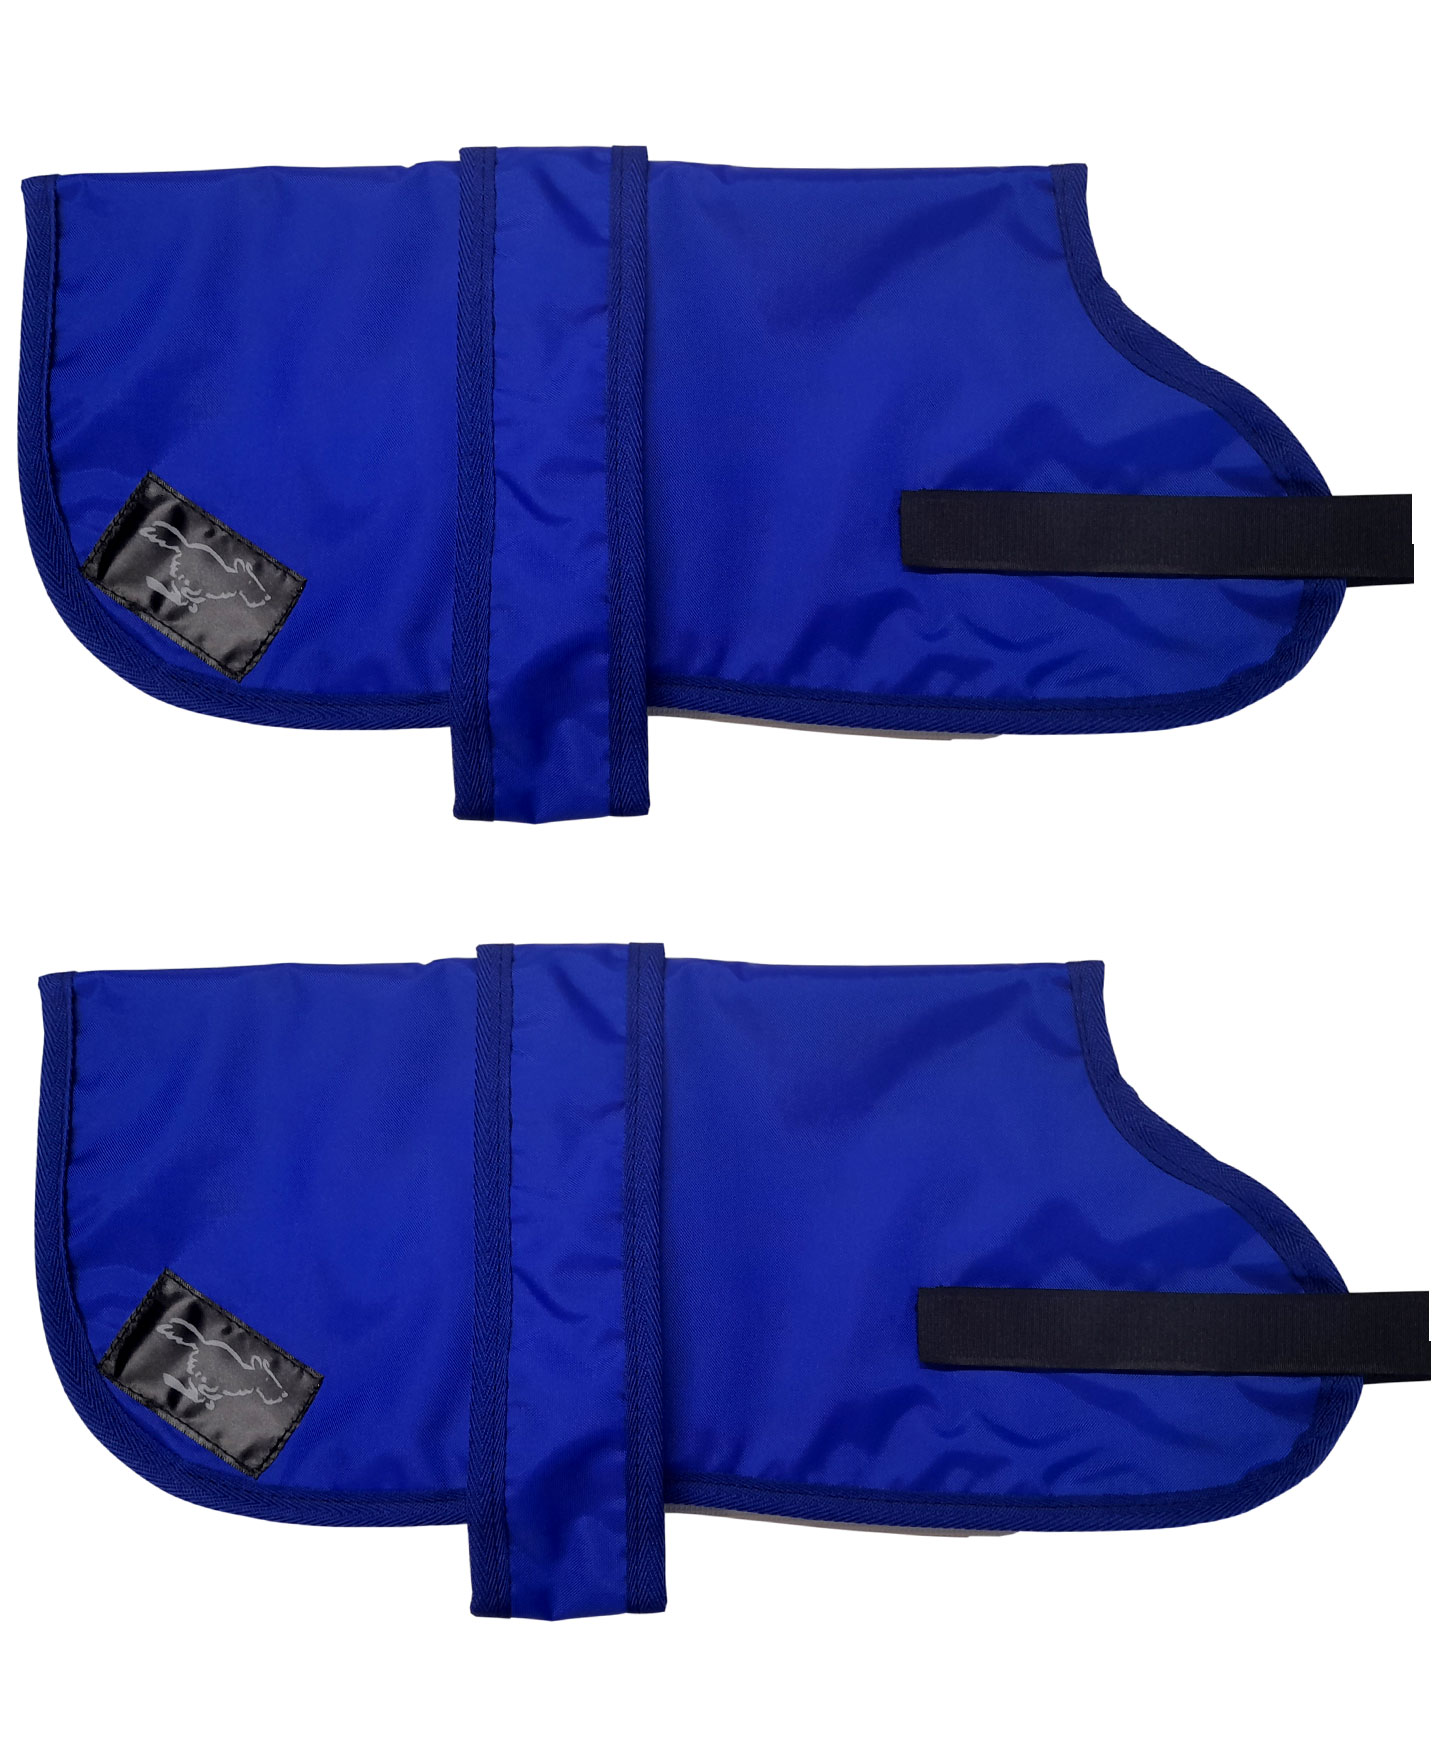 Personalised Waterproof Dog Coats - Lightweight Lining - Royal Blue